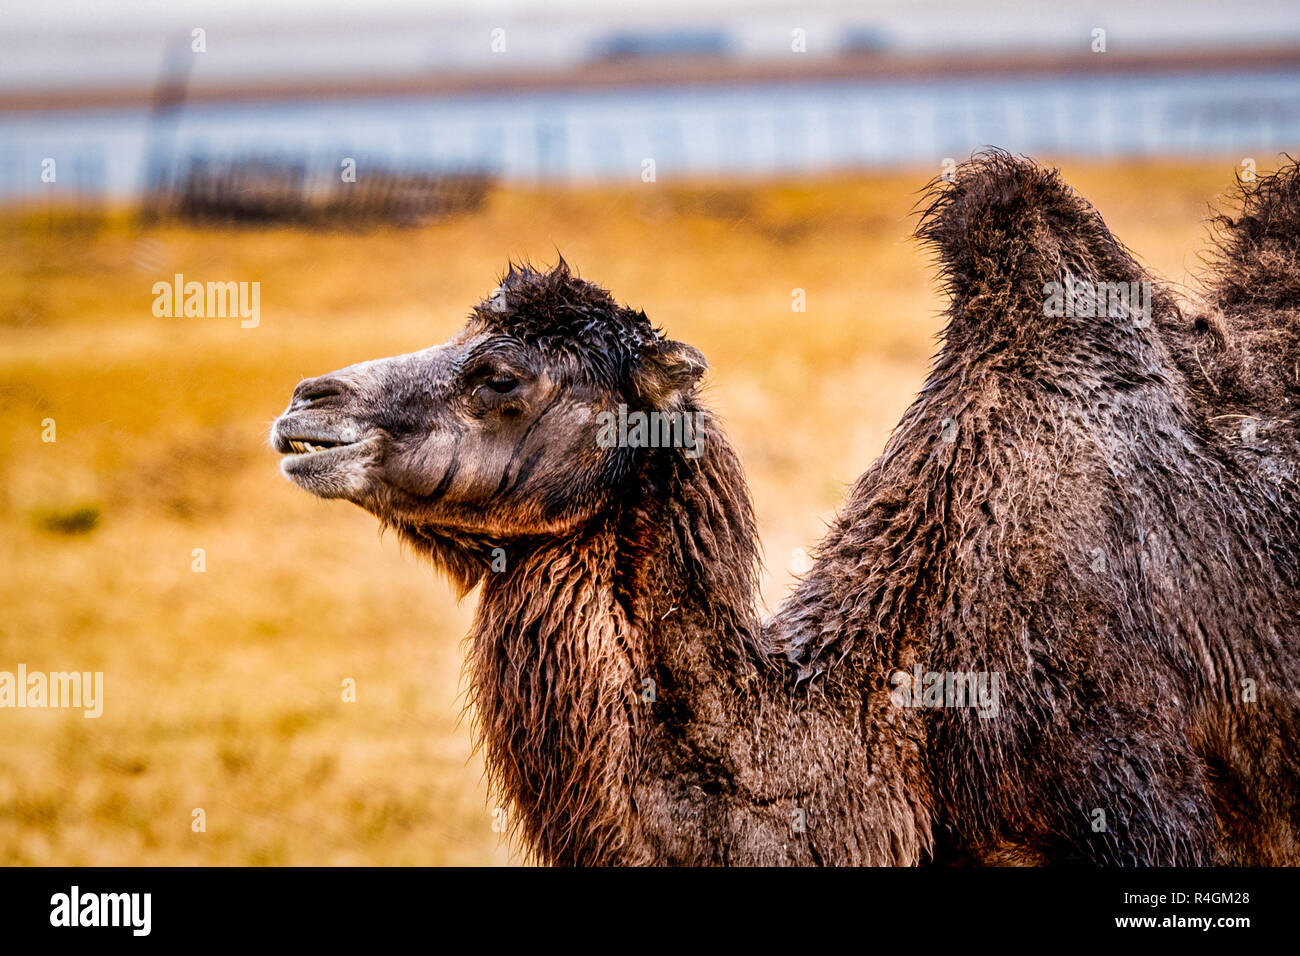 Wild Bactrian (Two Humps) Camels of Hulun Buir Grassland during Autumn in Inner Mongolia, China - Stock Image